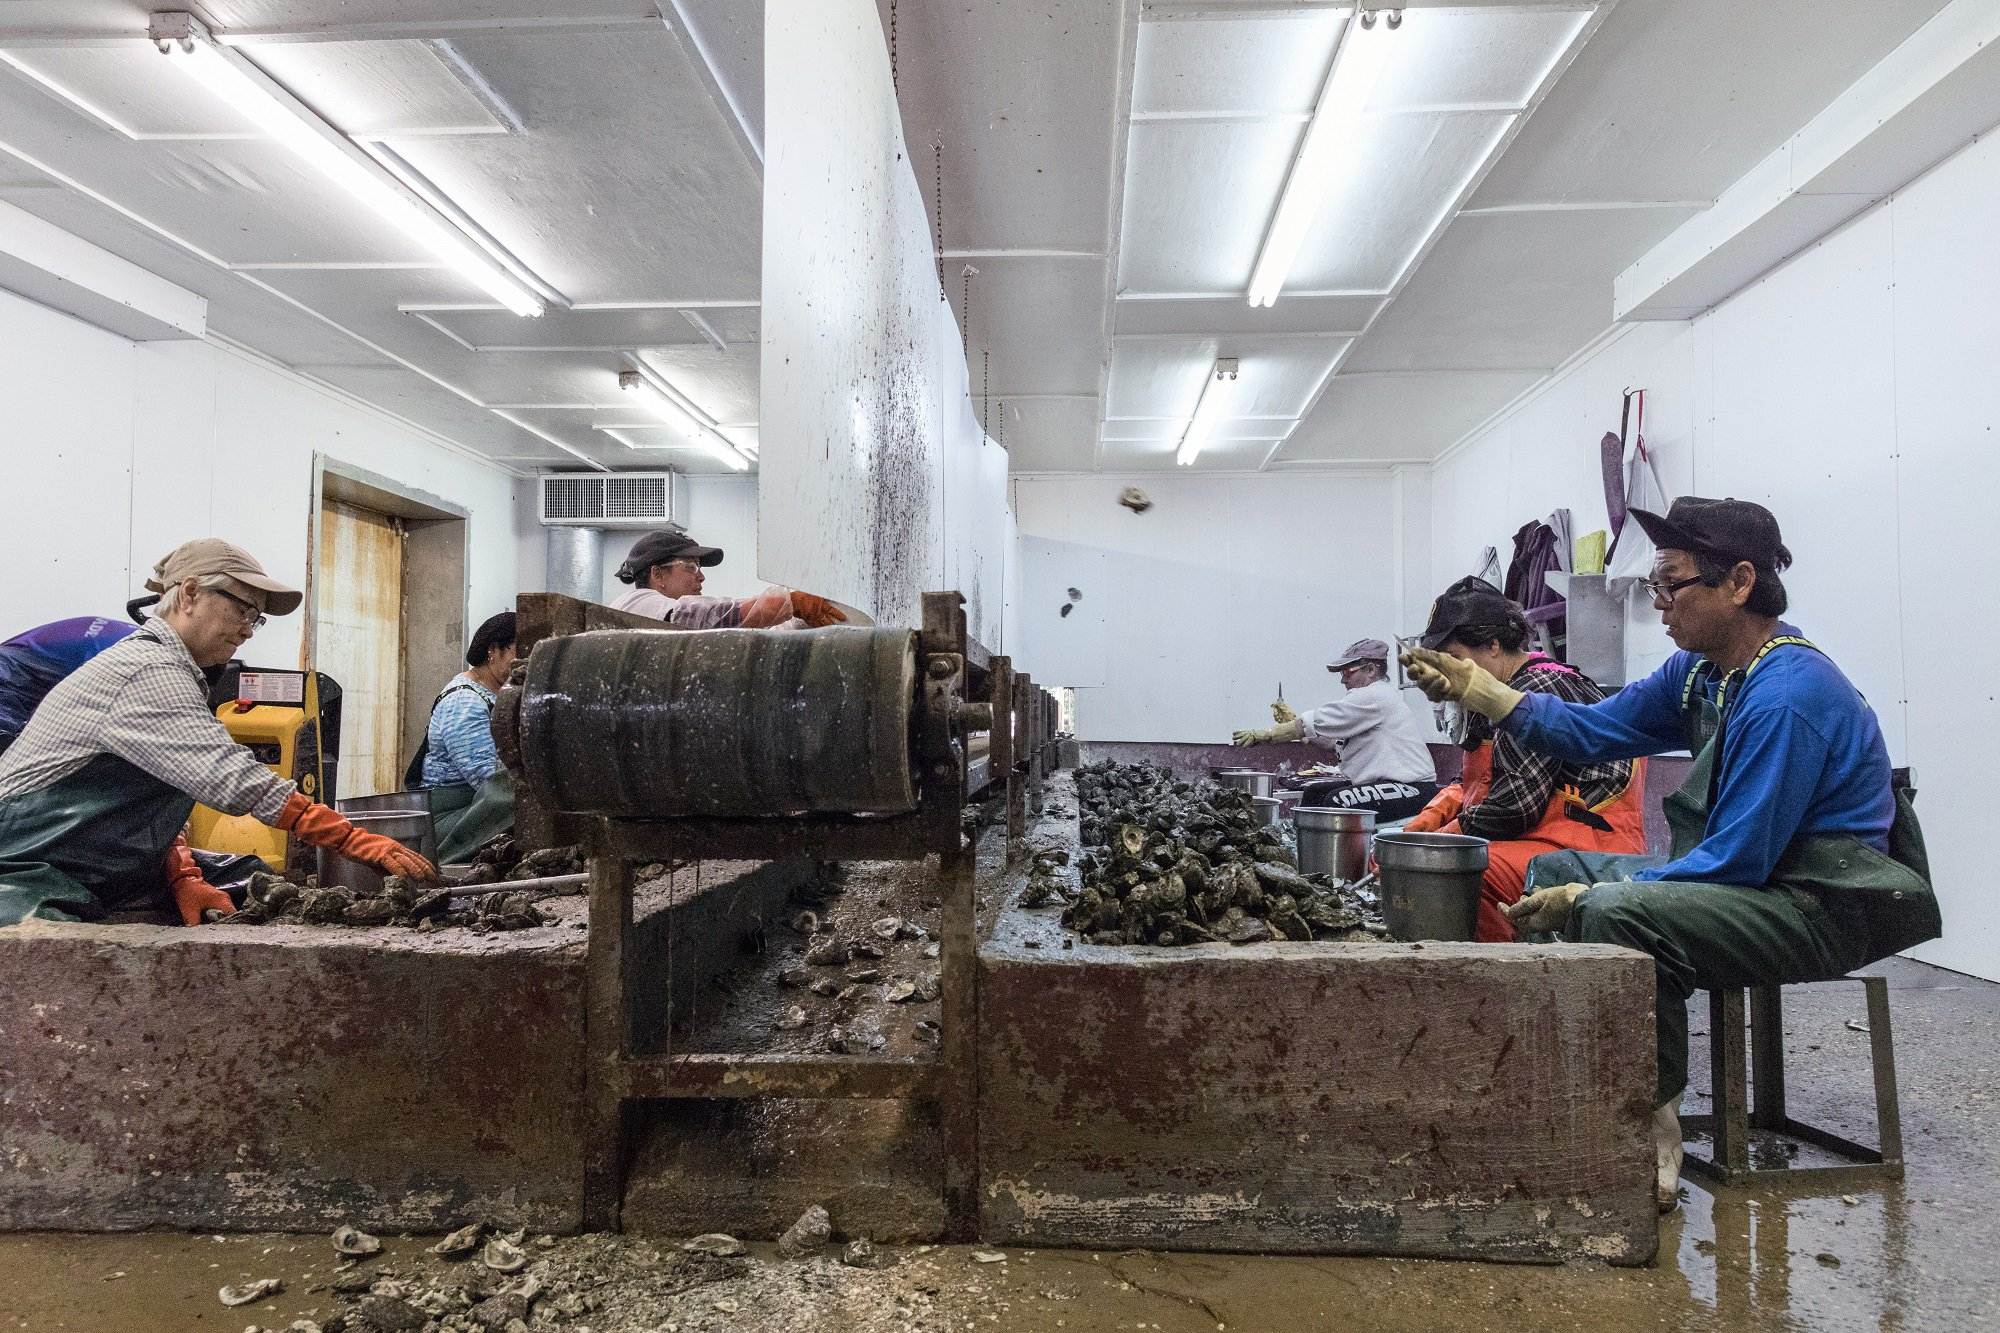 Today, 20% of Bayou la Batre's residents are originally from Vietnam, Laos and Cambodia. These Indochinese refugees worked in the fishing industries back home, but now they work at Travis Stringfellow's Crimson Bay Seafood Company.